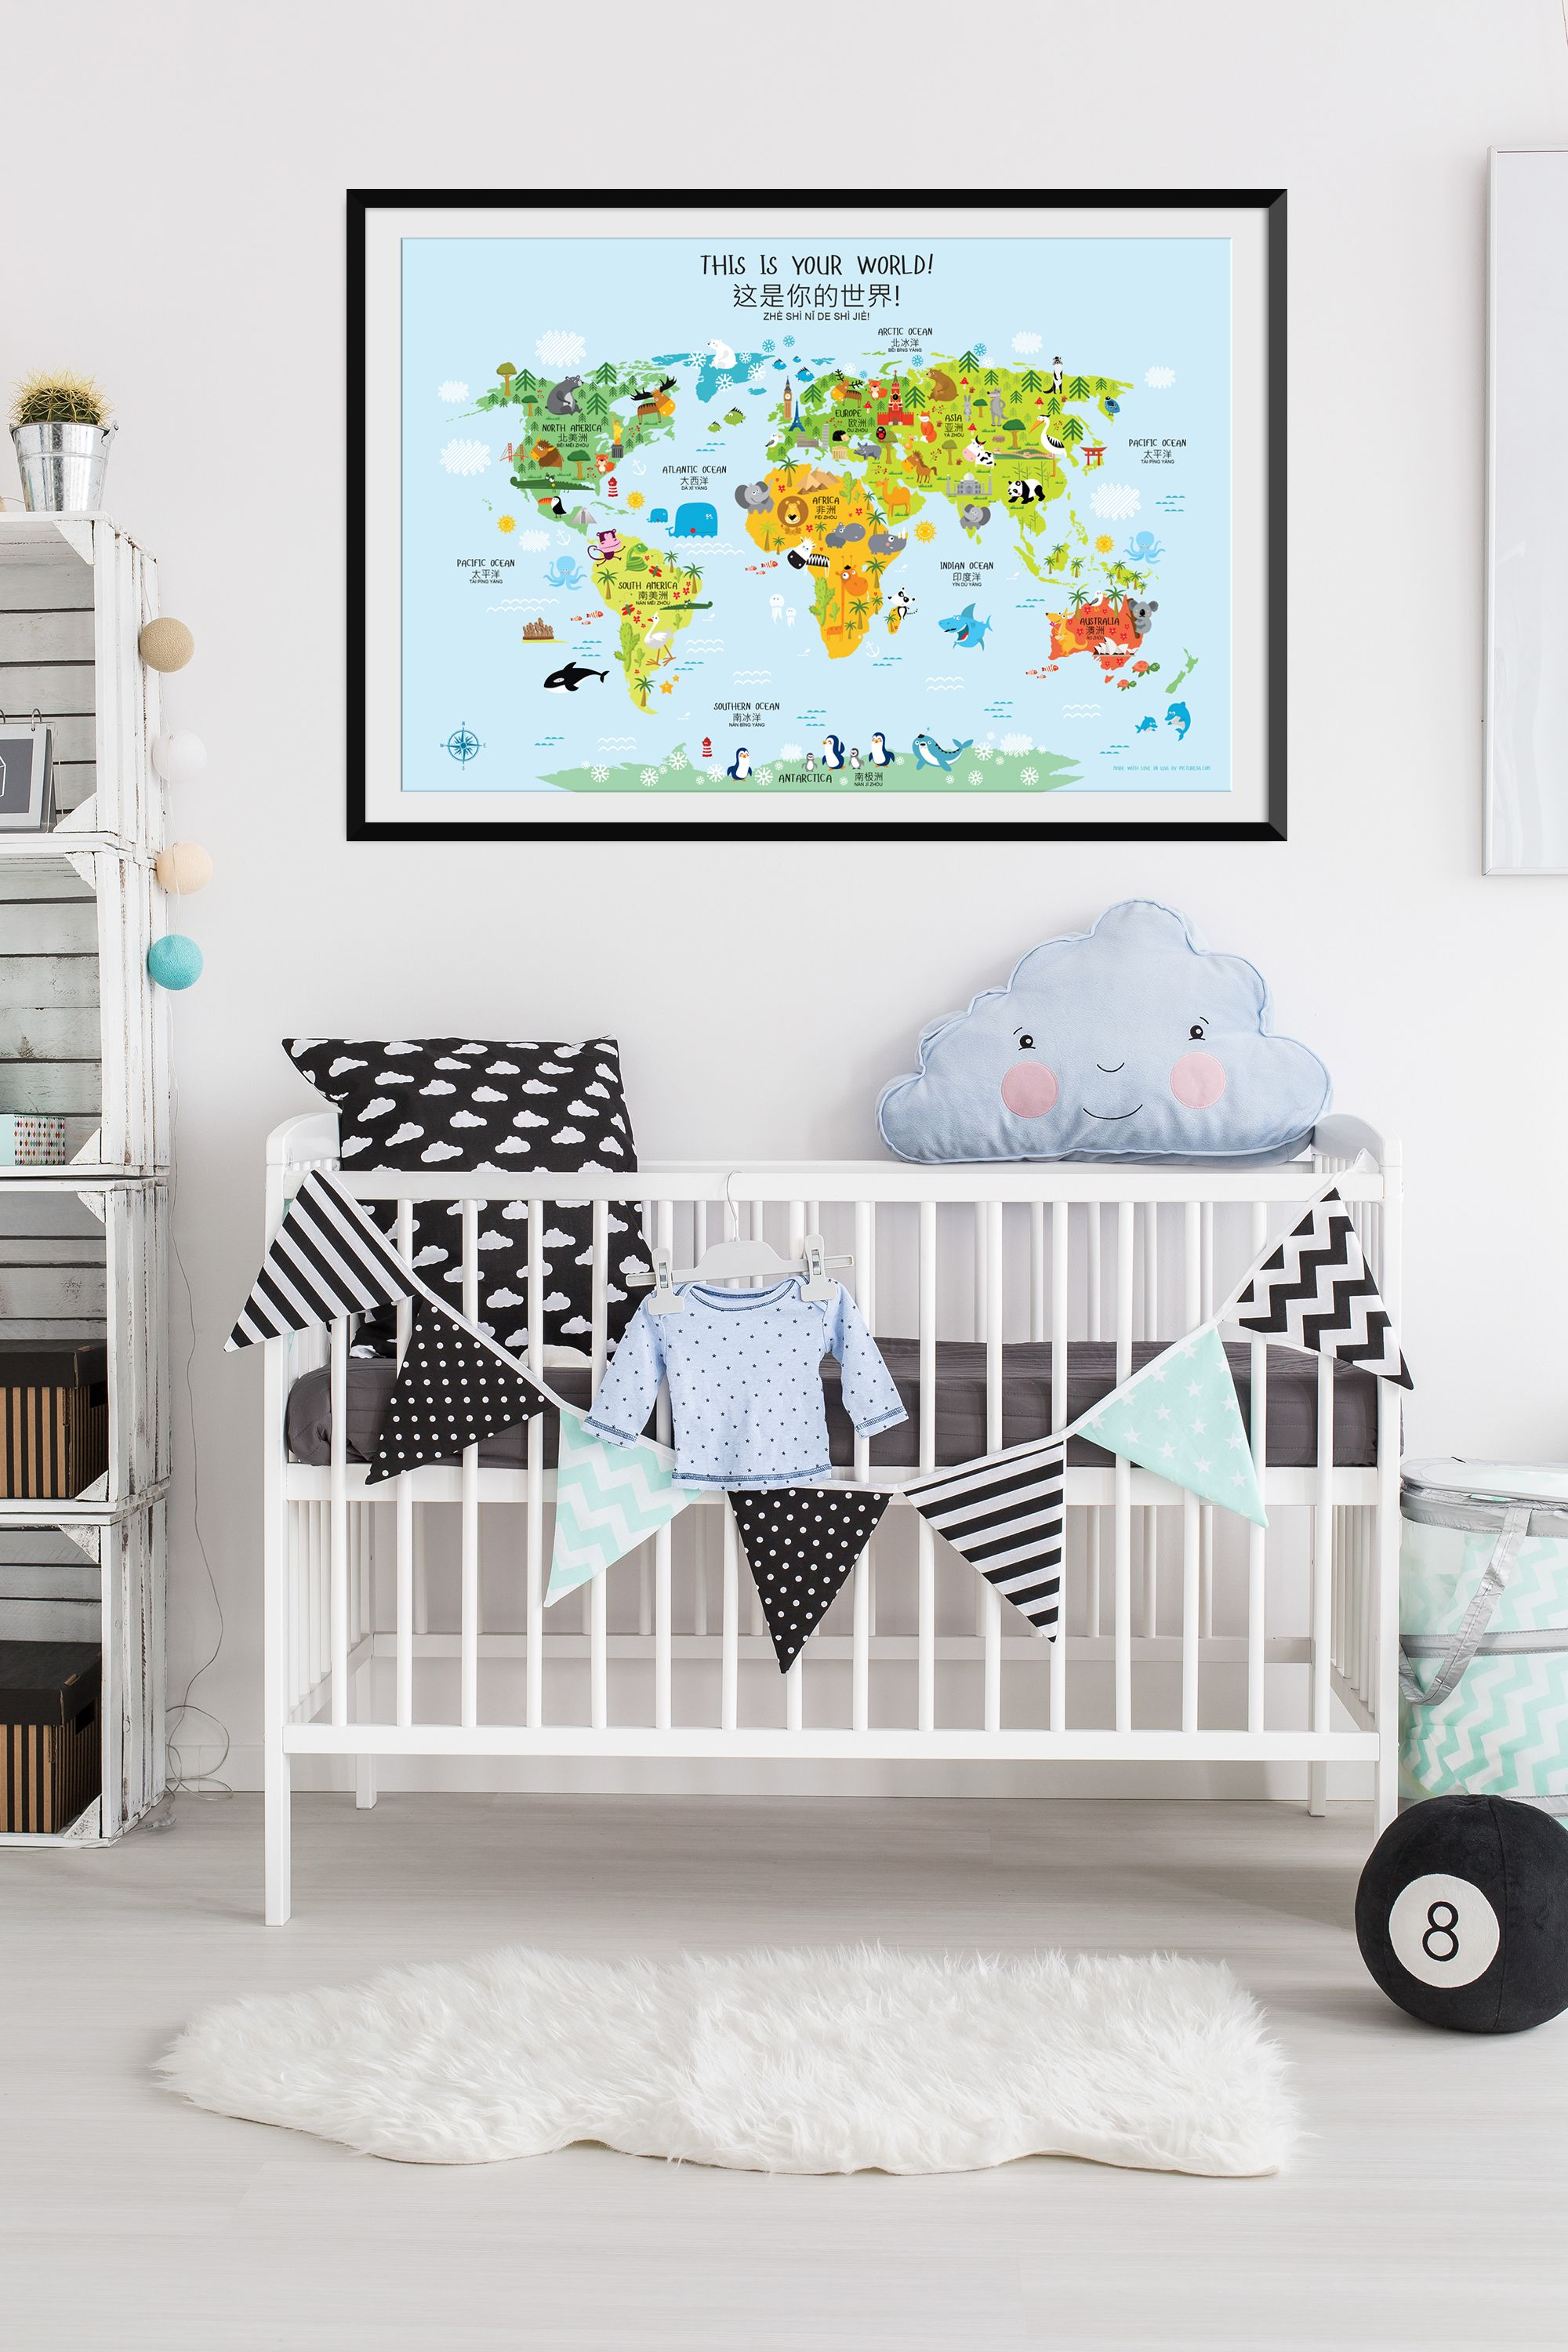 Chinese world map poster unique baby gift nursery decor kids gift world map nursery decor in english and chinese is your family bilingual and you are gumiabroncs Images